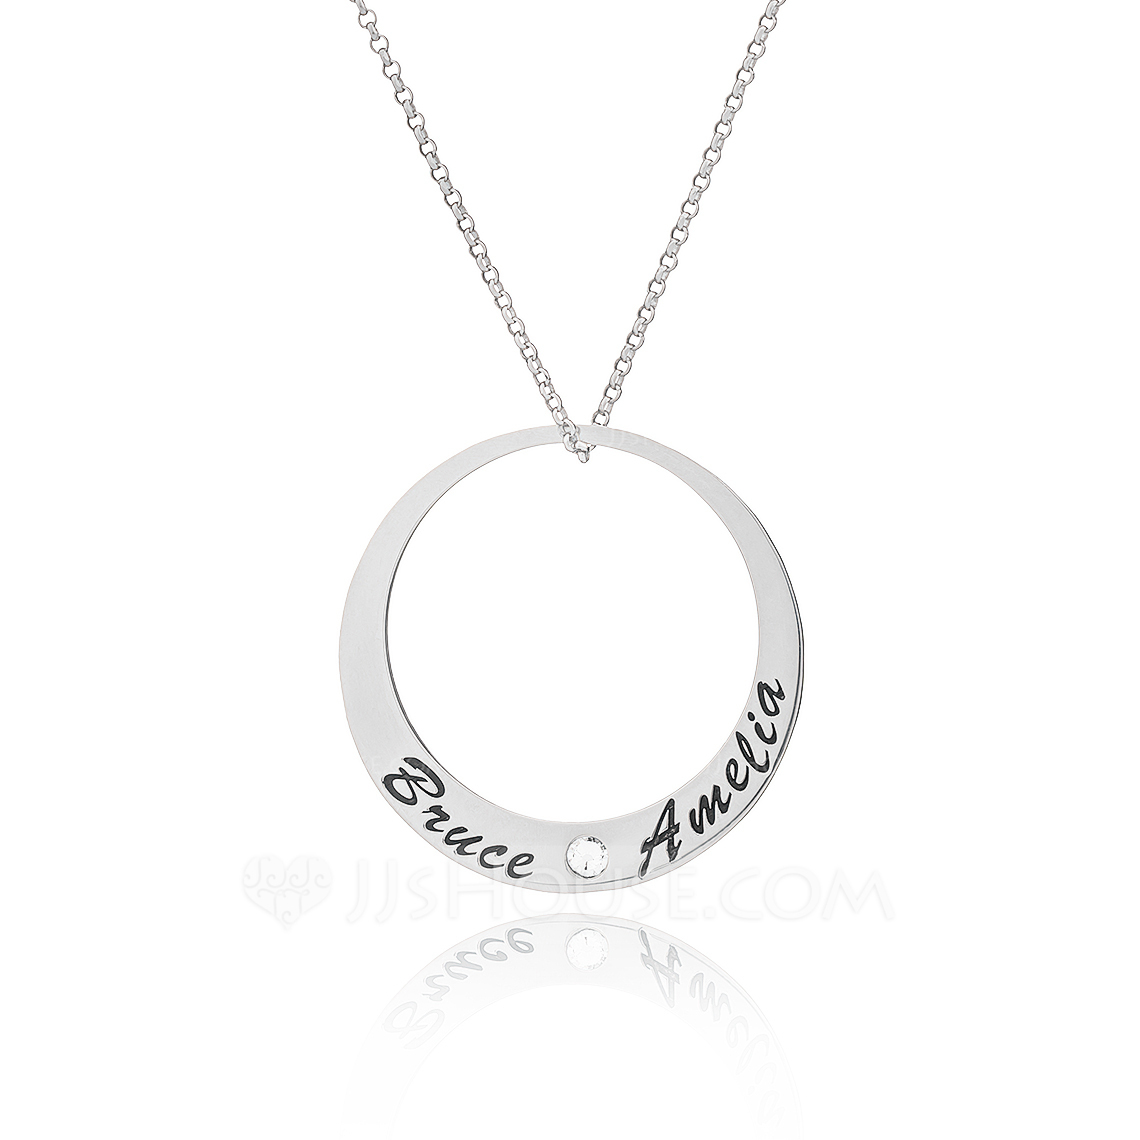 Custom Sterling Silver Engraving/Engraved Circle Circle Necklace With Diamond - Birthday Gifts Mother's Day Gifts